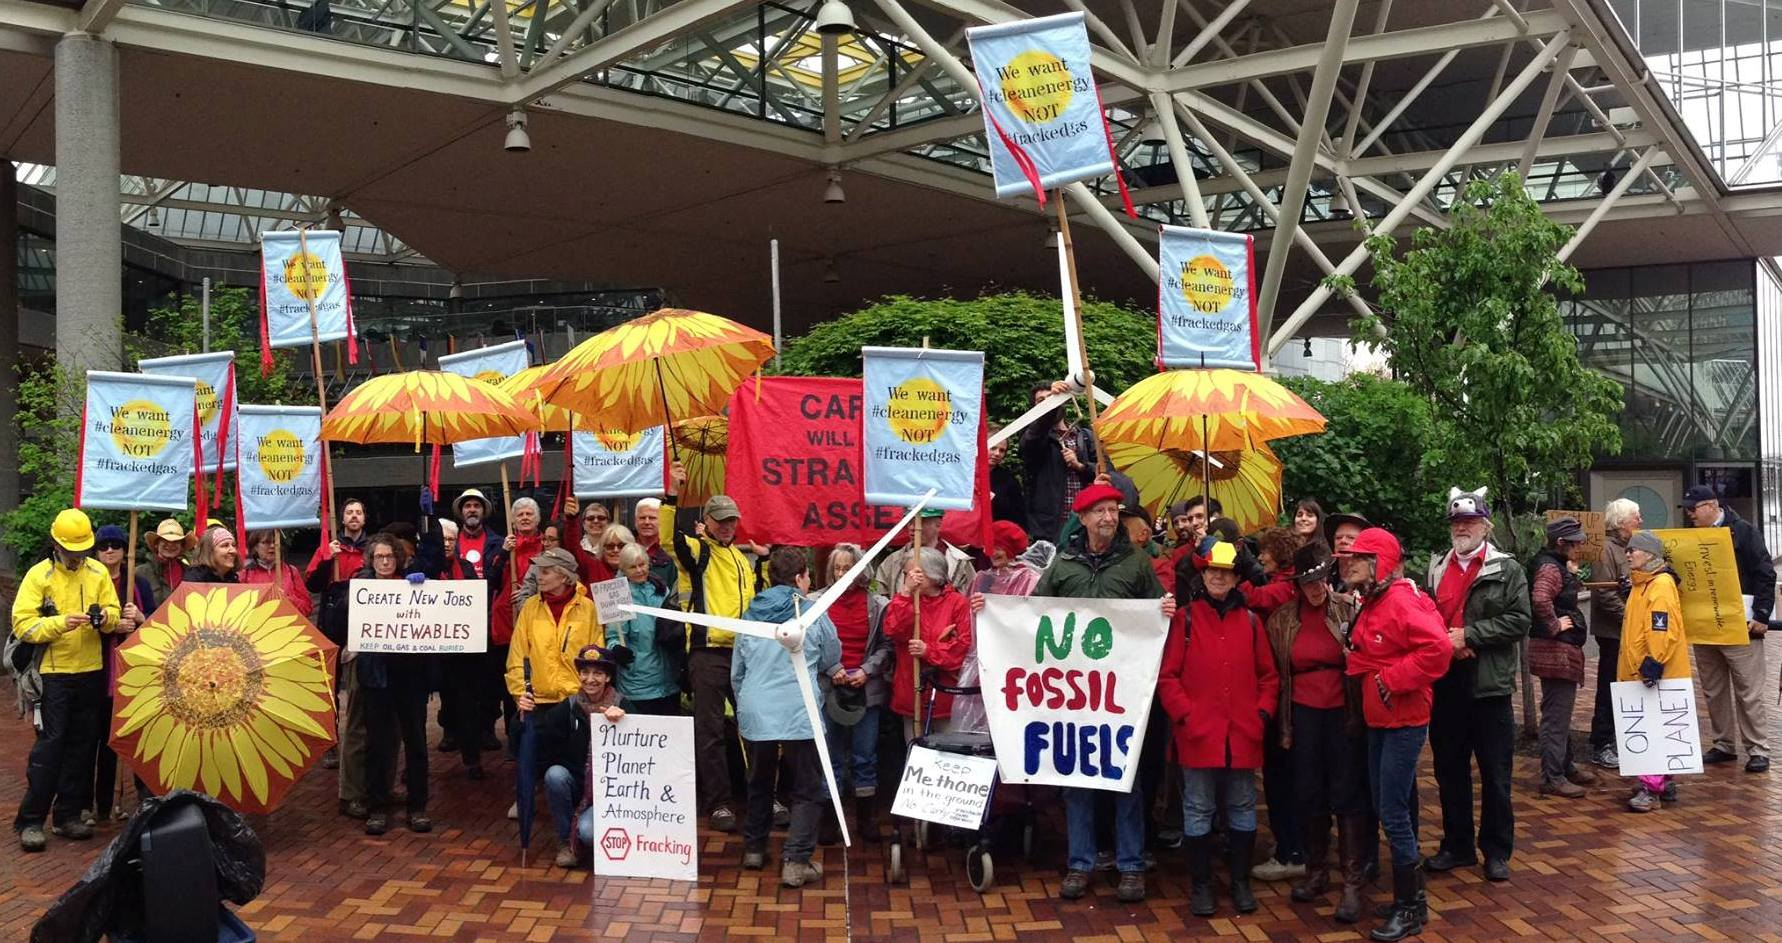 4-26-17_fossil_fuel_rally_in_Portland_group_photo.jpg